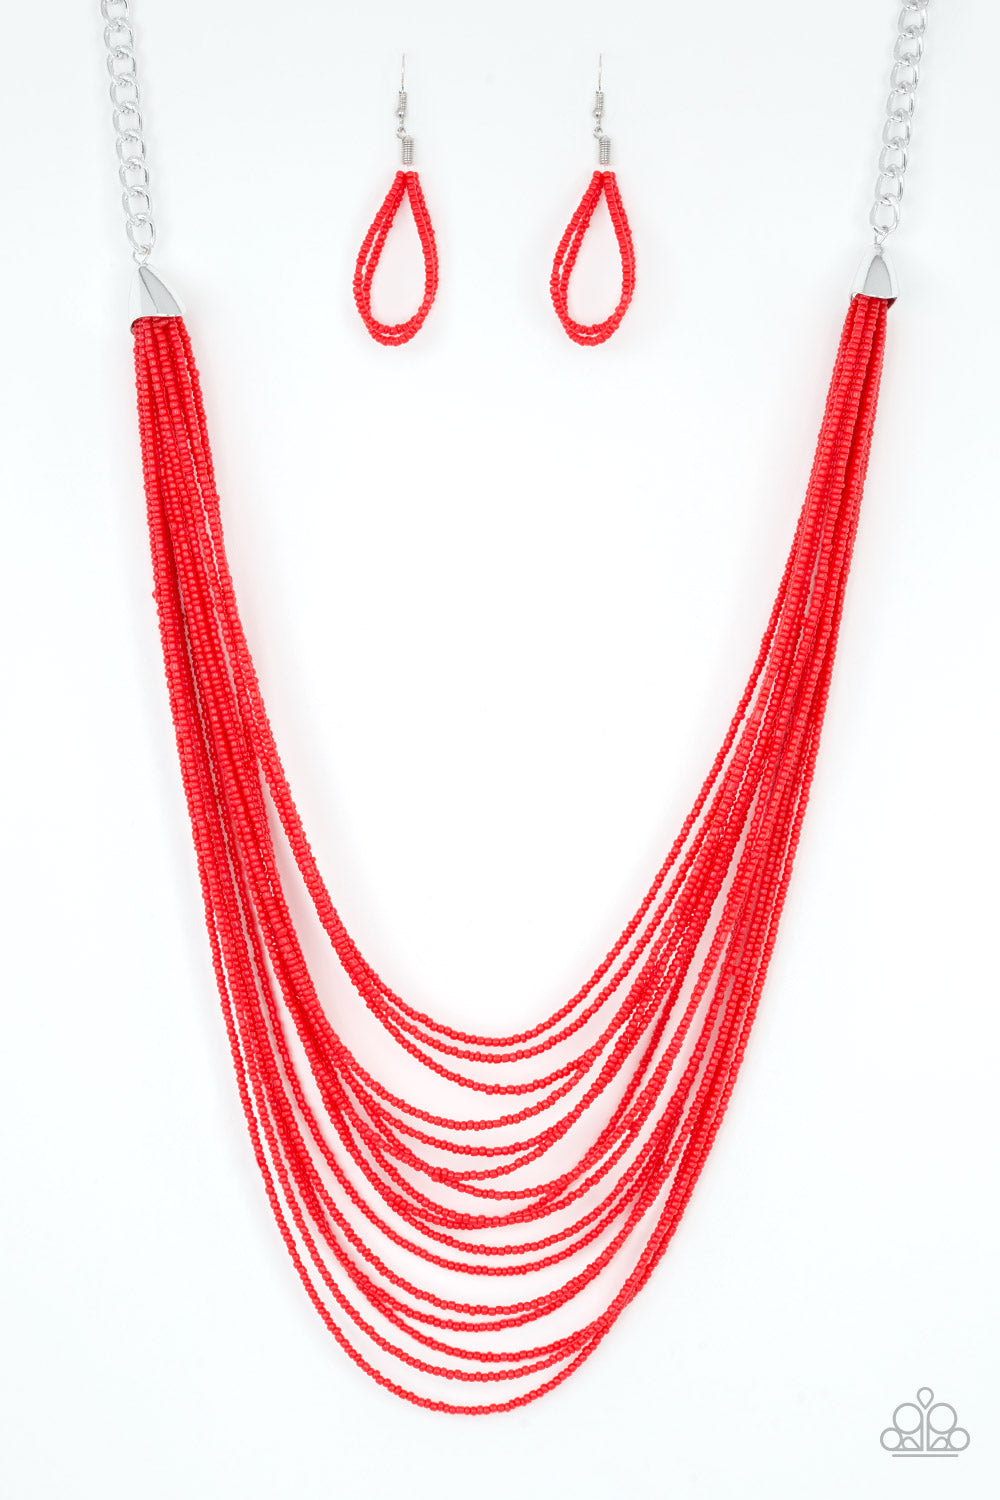 Peacefully Pacific - Red Seed Bead Necklace